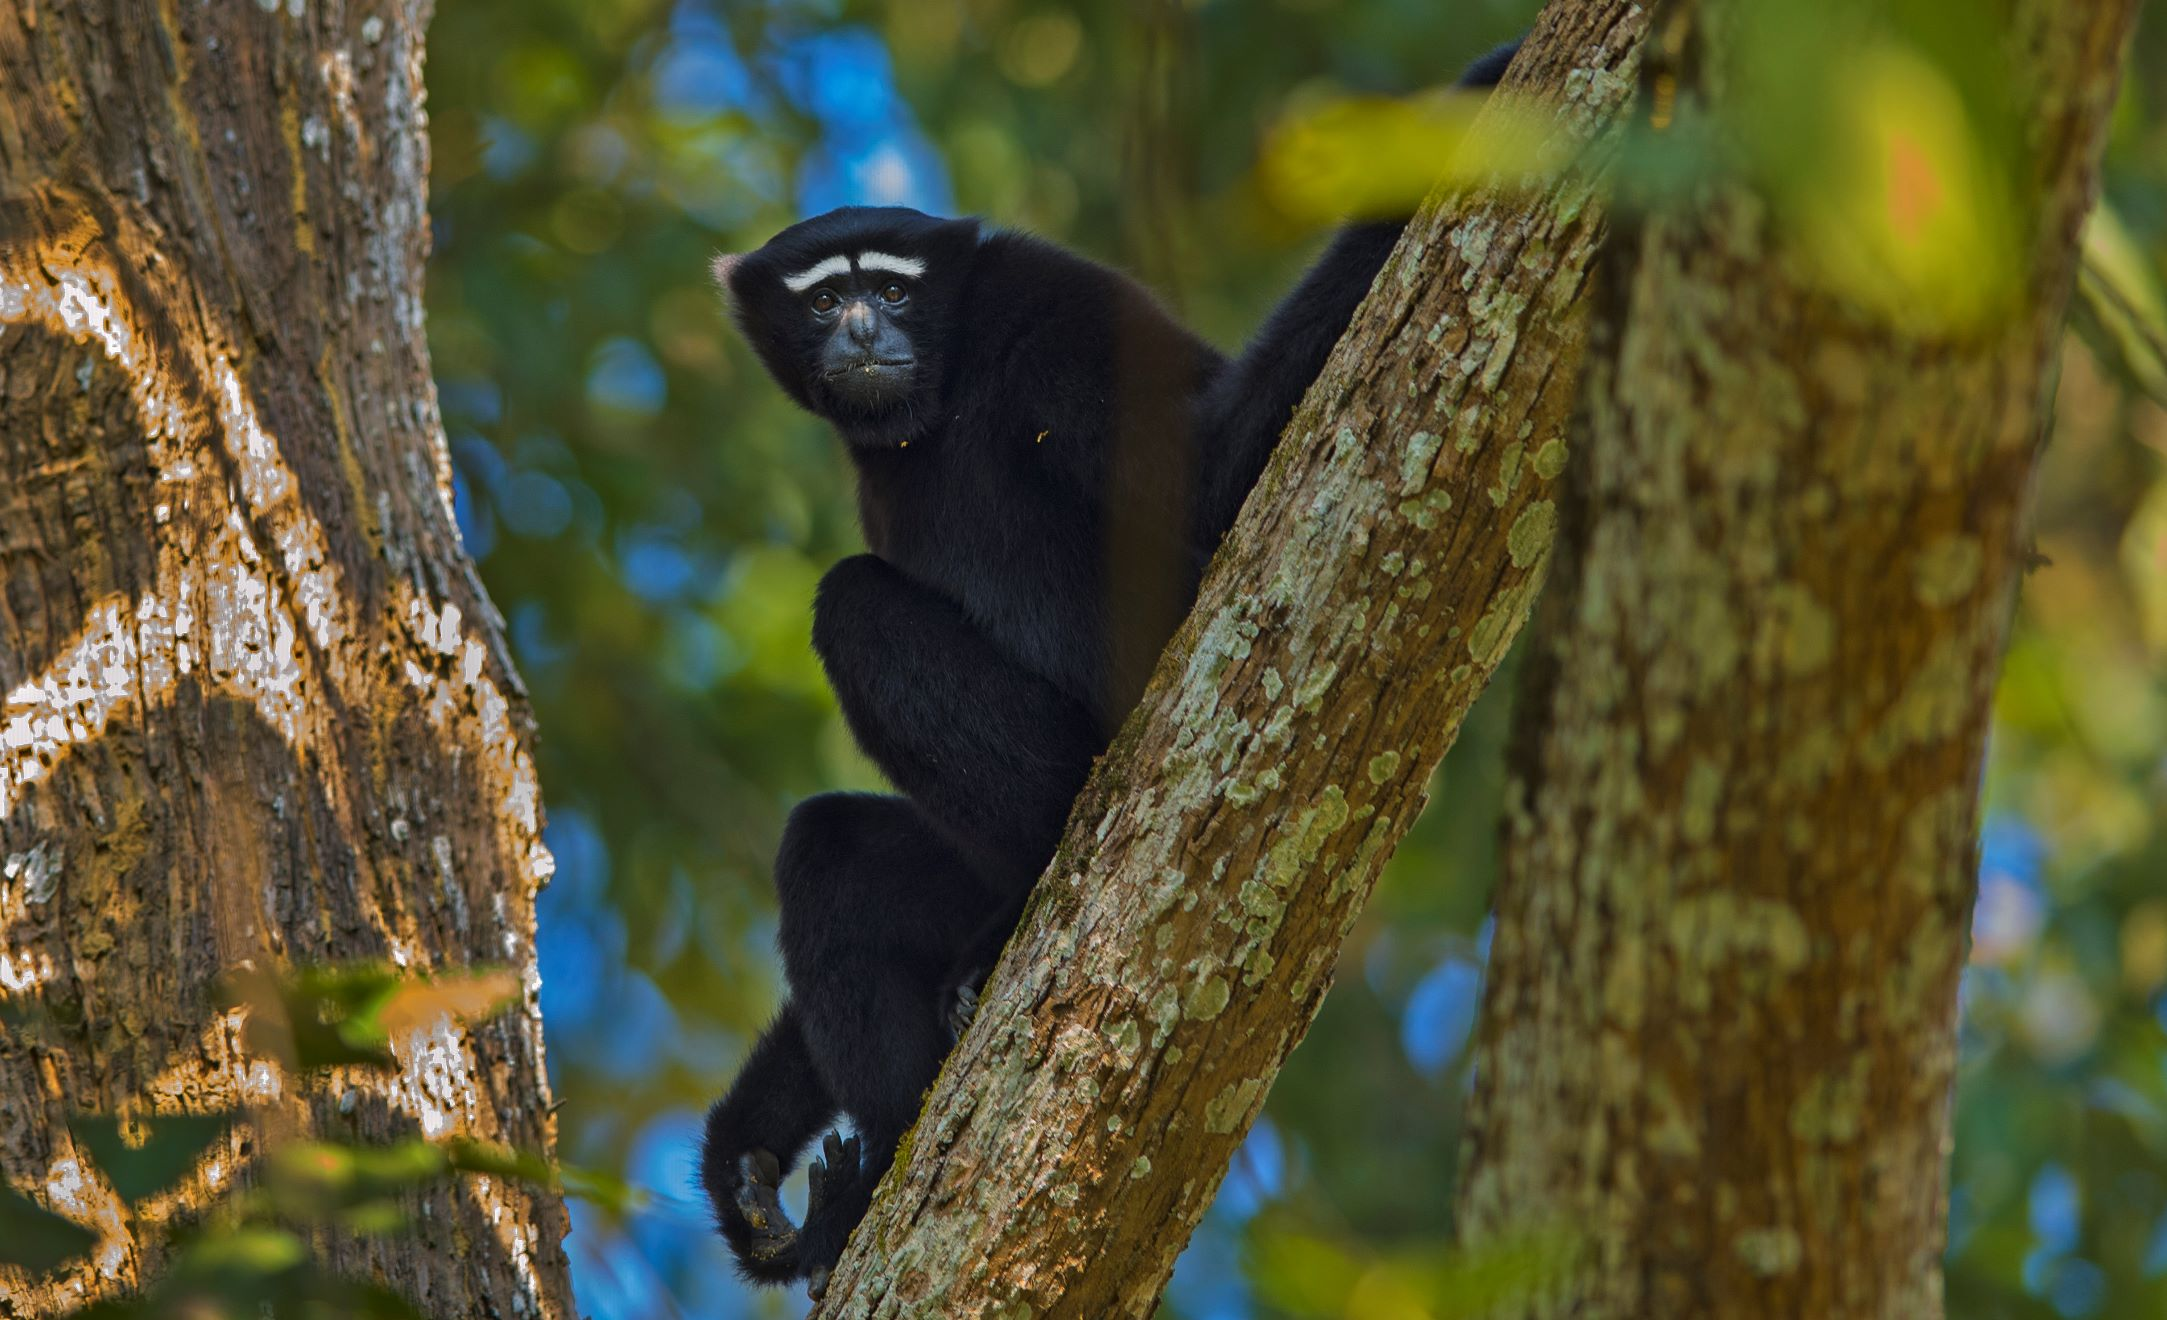 Swift and agile, the hoolock gibbon is well adapted to an arboreal life. It rarely steps down to ground level.